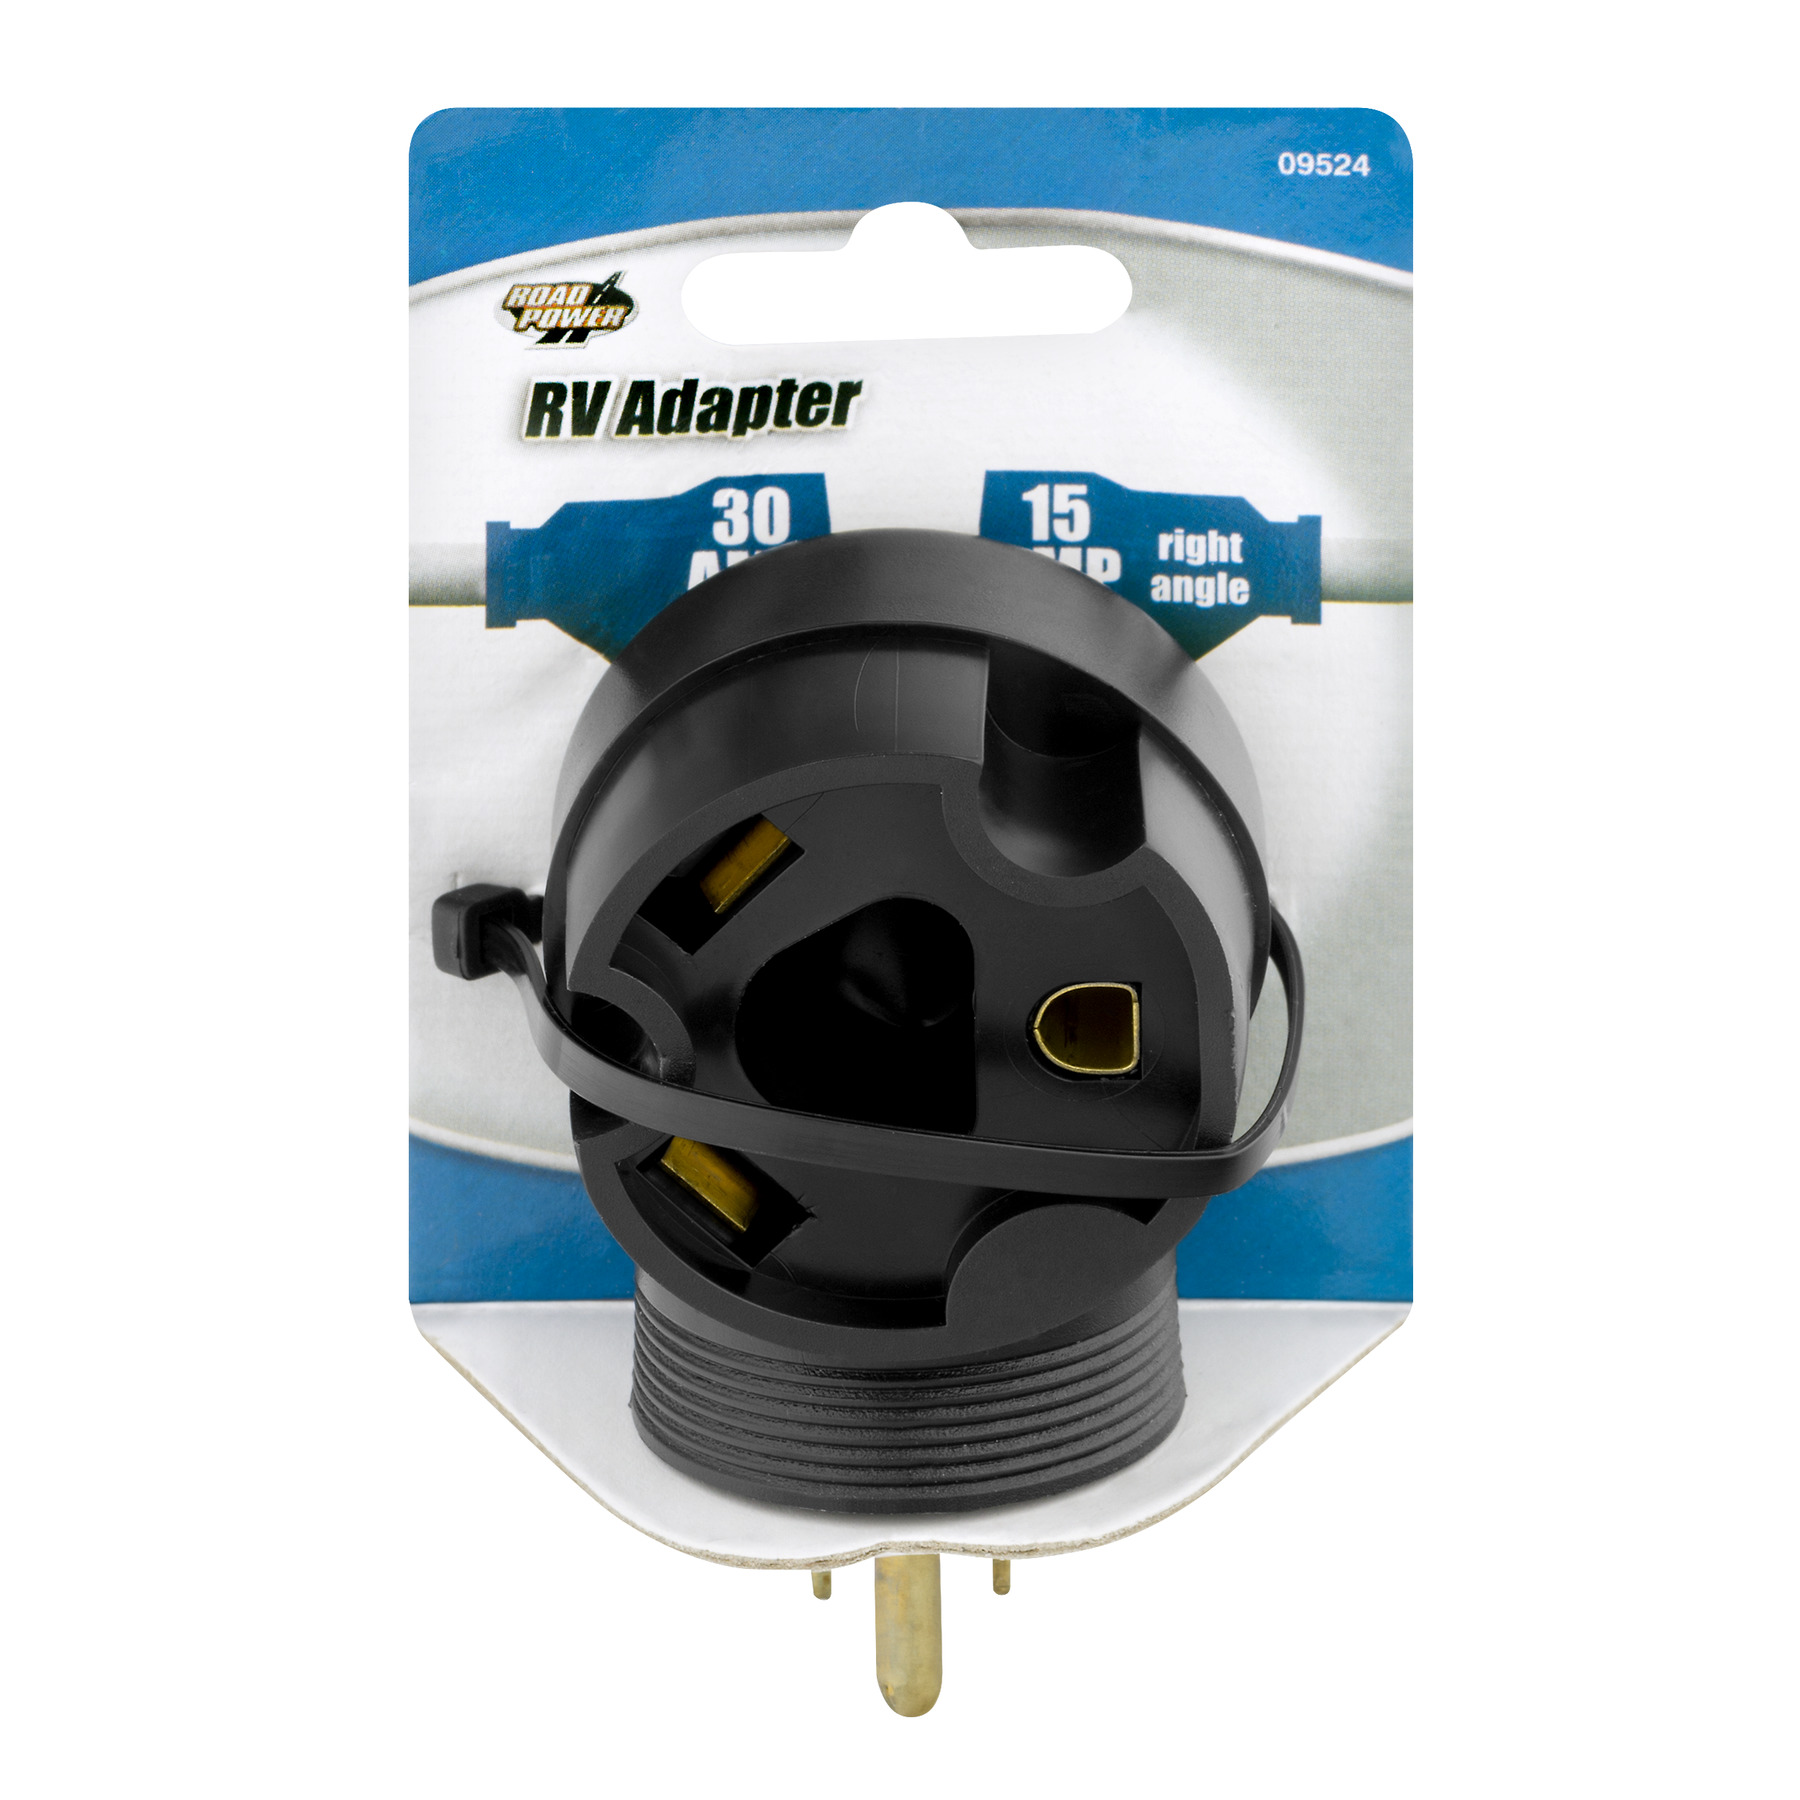 Road Power RV Adapter, 1.0 CT